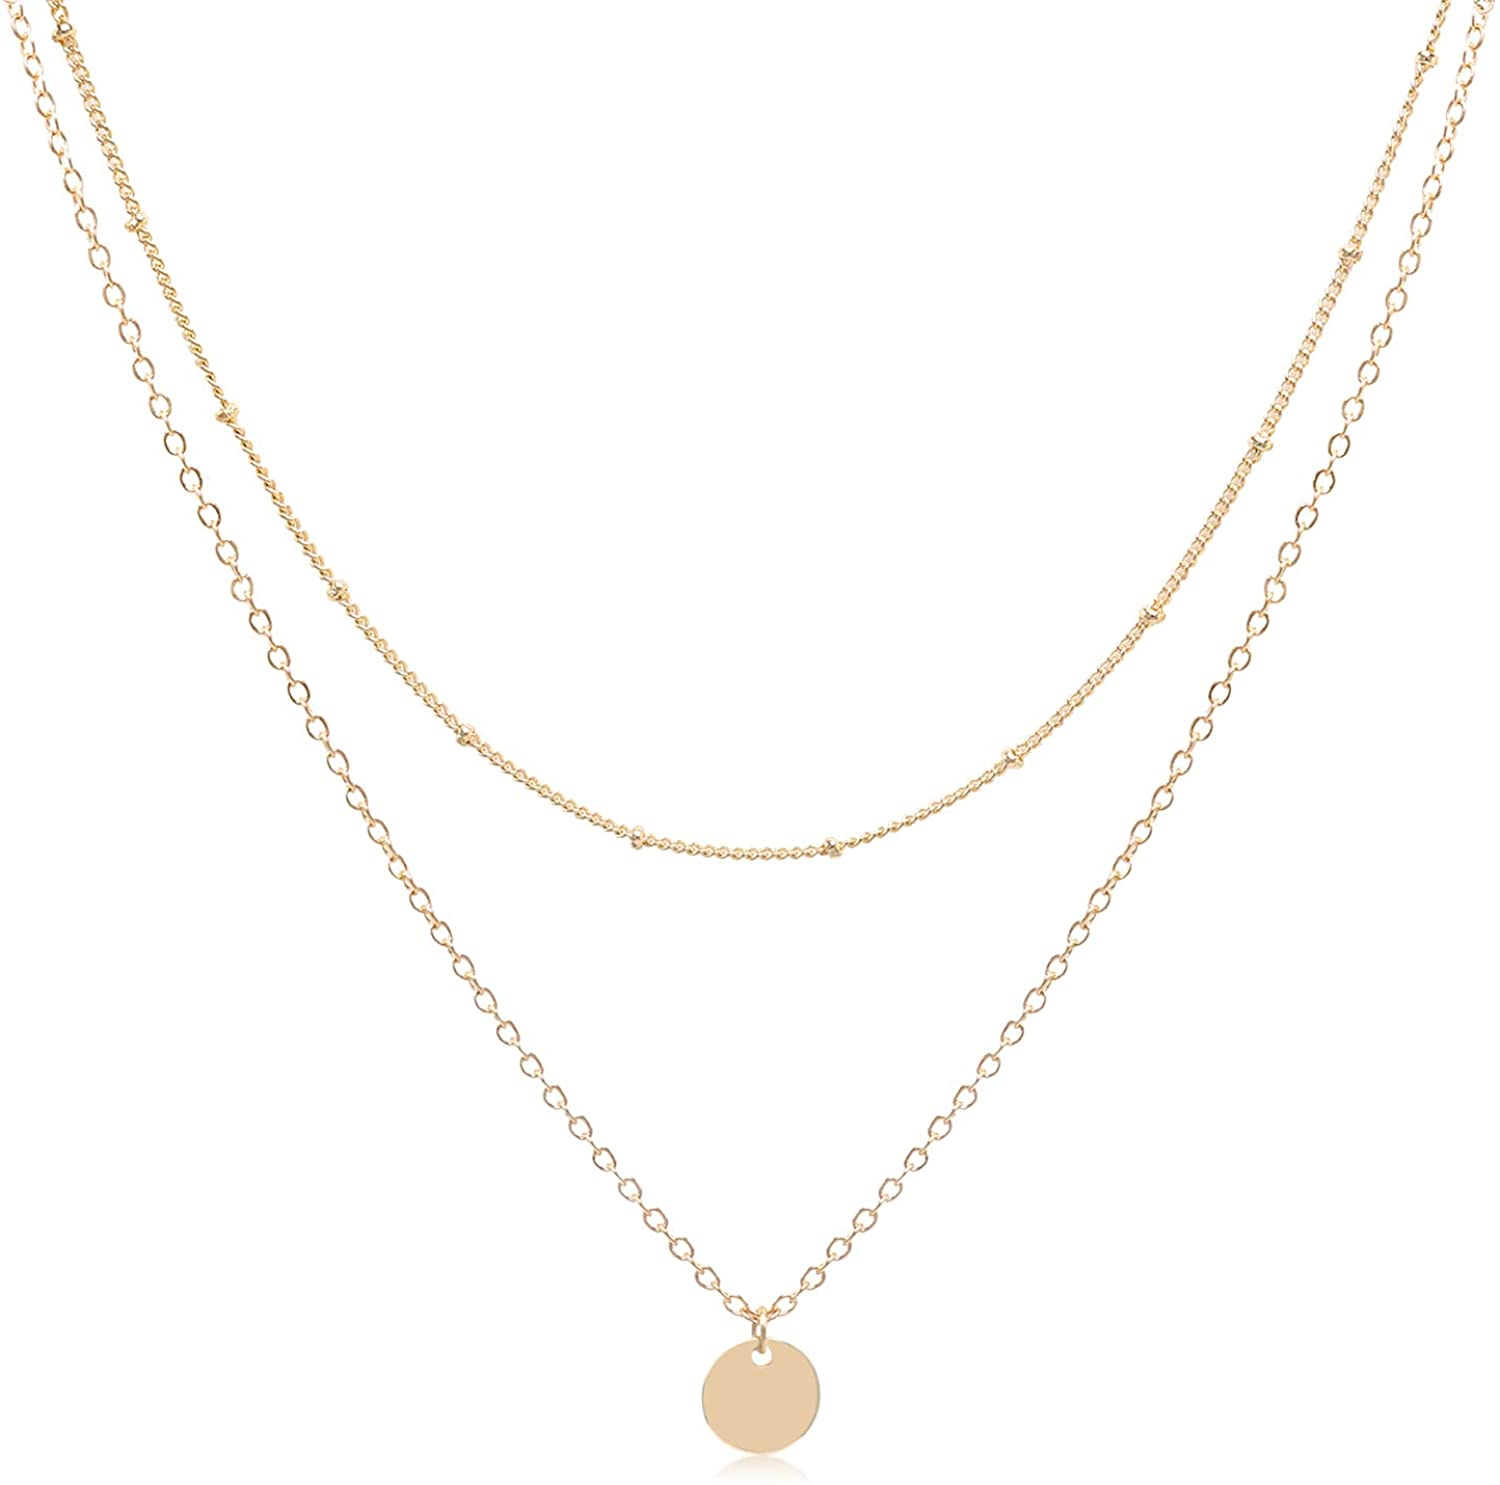 Aisansty Dainty Layered Choker Necklaces Handmade Coin Tube Star Pearl Pendant Multilayer Adjustable Layering Chain Gold Plated Necklaces Set for Women Girls